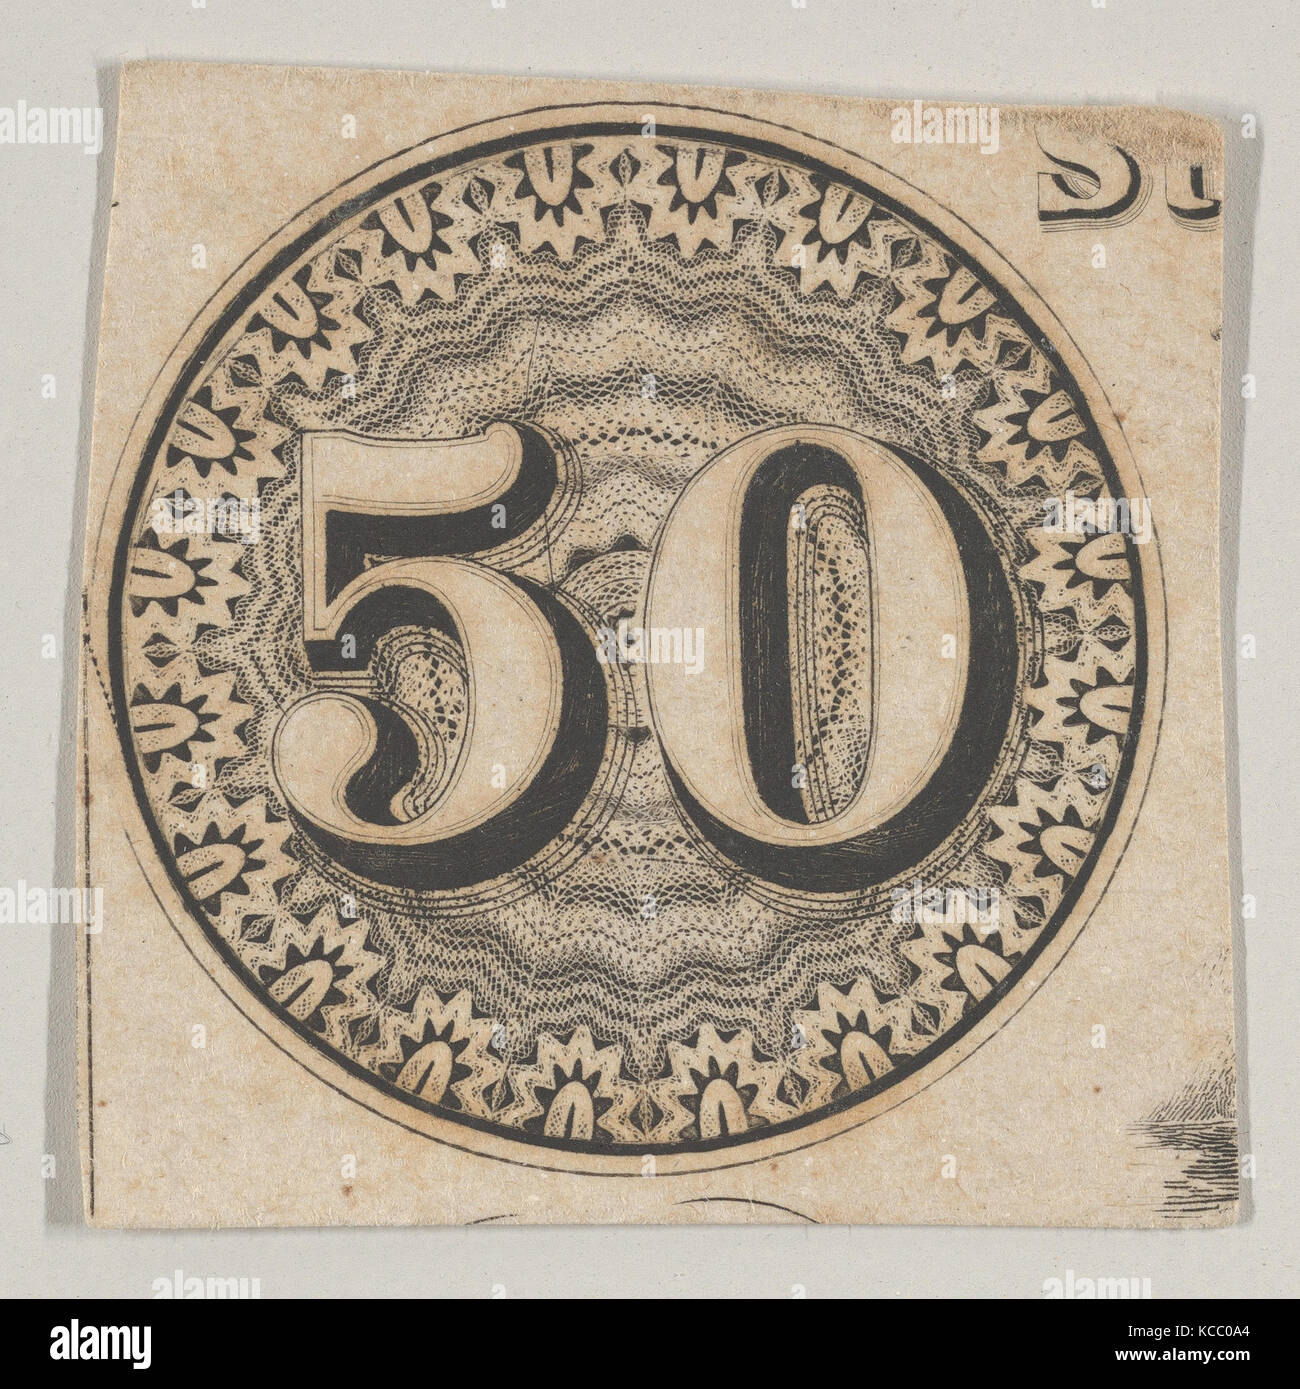 Banknote motif: the number 50 against an ornamental lathe work rondel resembling lace, Associated with Cyrus Durand, - Stock Image